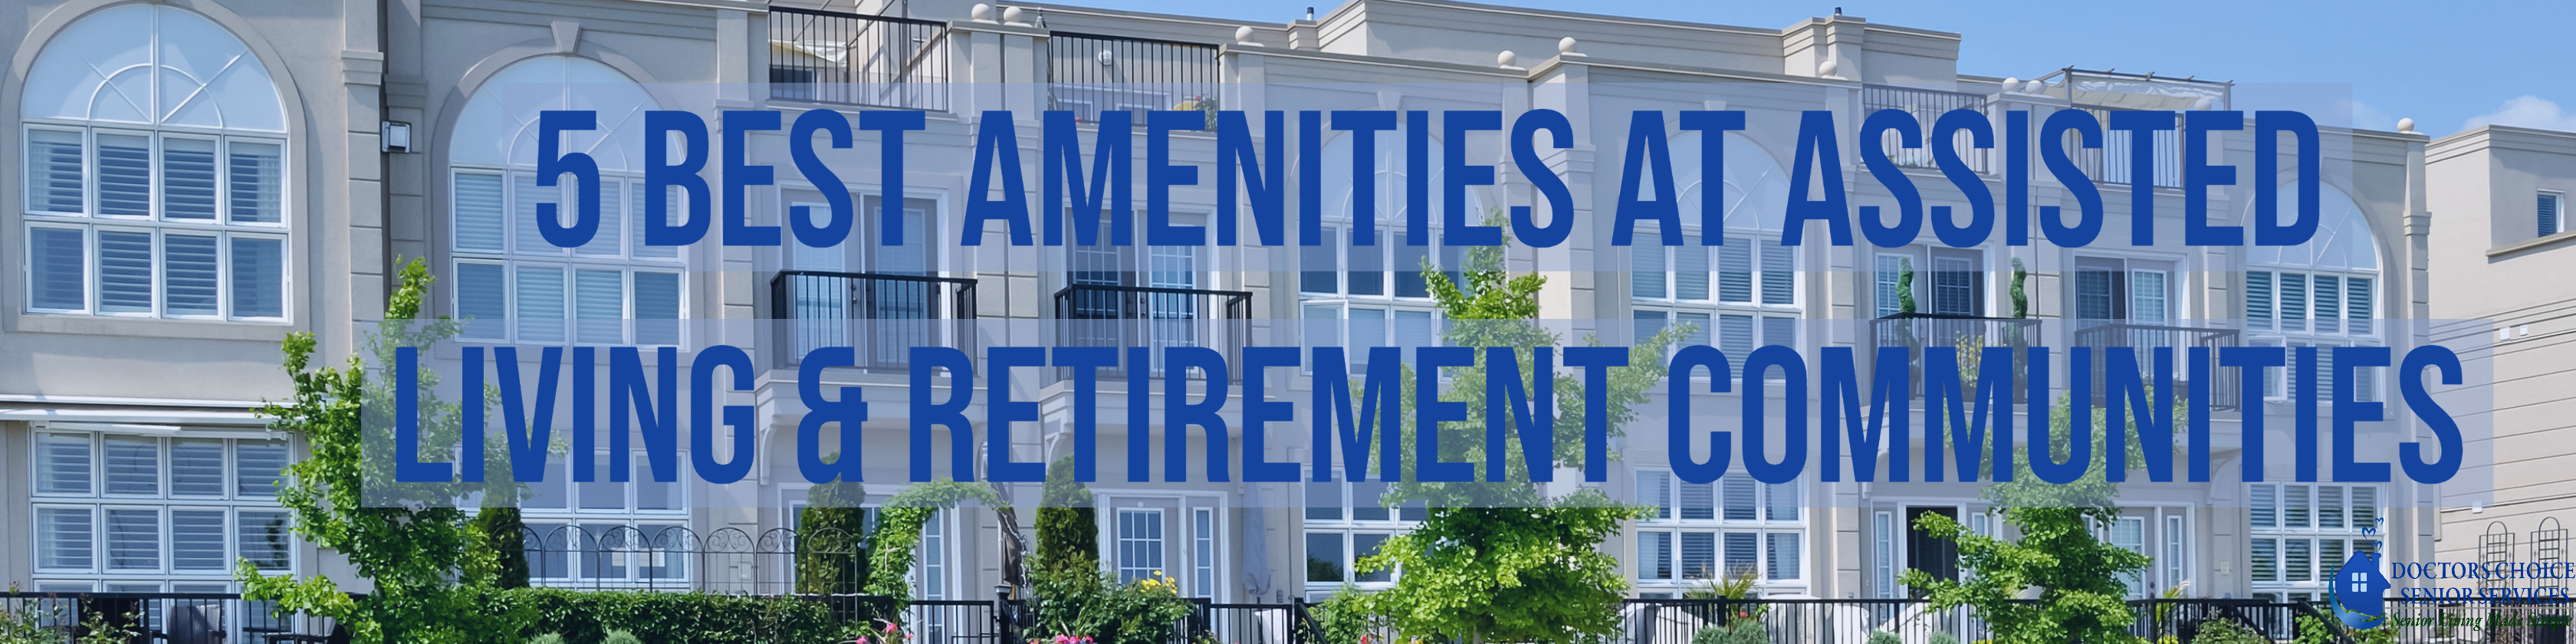 5 Best Amenities at Assisted Living and Retirement Communities